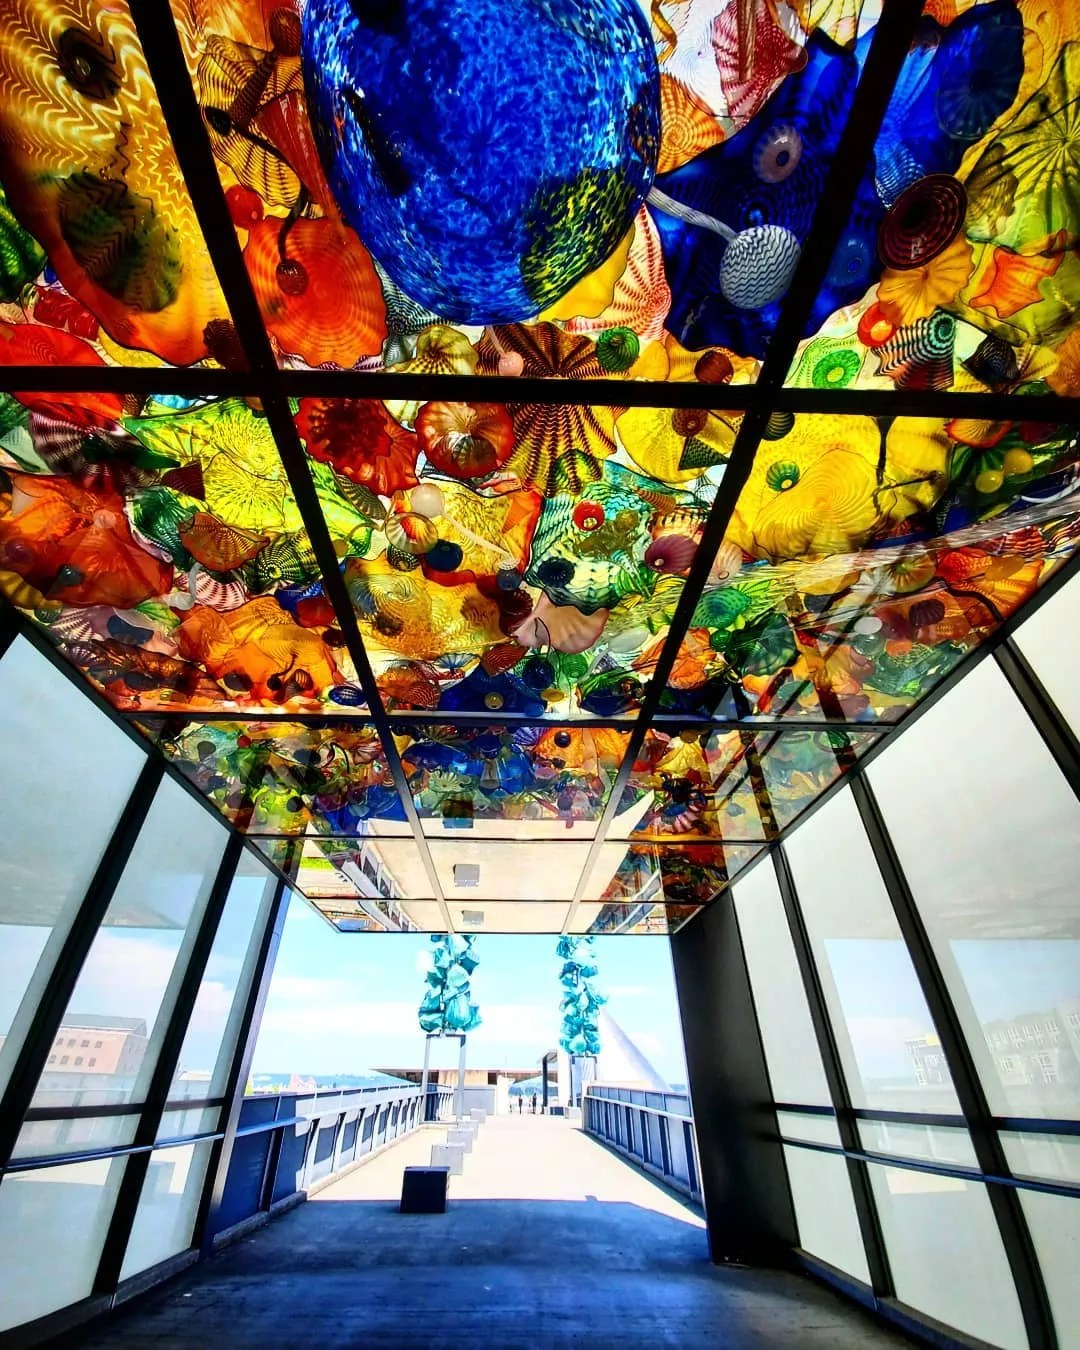 Glass building with colorful glass sculptures on ceiling. Photo by Instagram user @yk5545